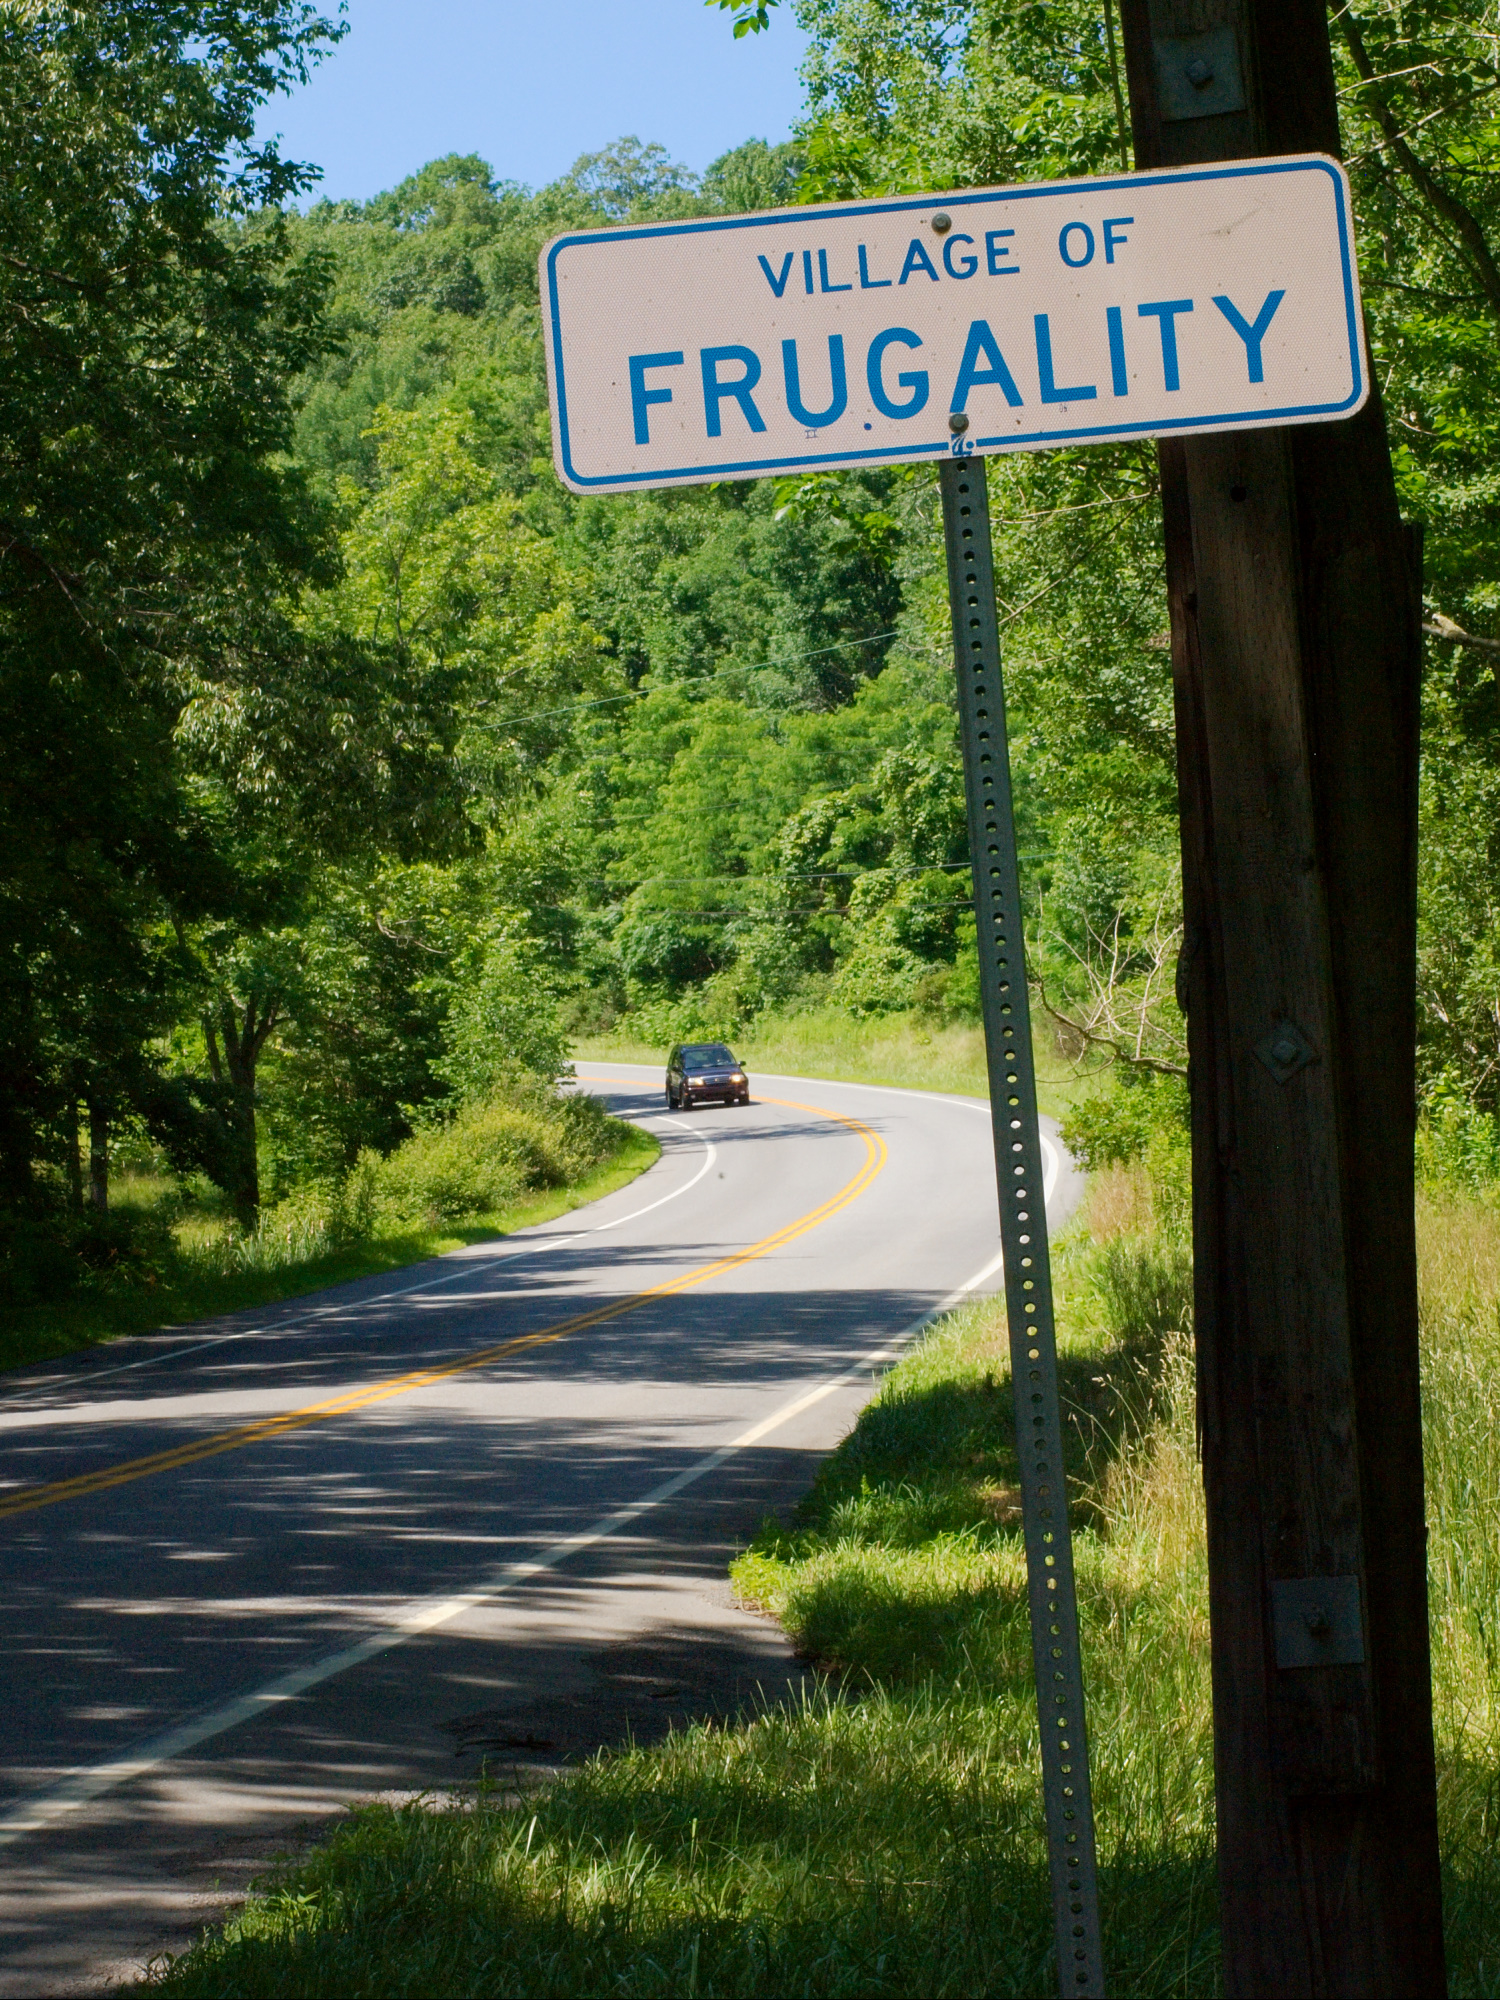 Developing a attitude of frugality is one of the biggest benefits of living on a low income ... photo by CC user Matthew Hunt on Flickr